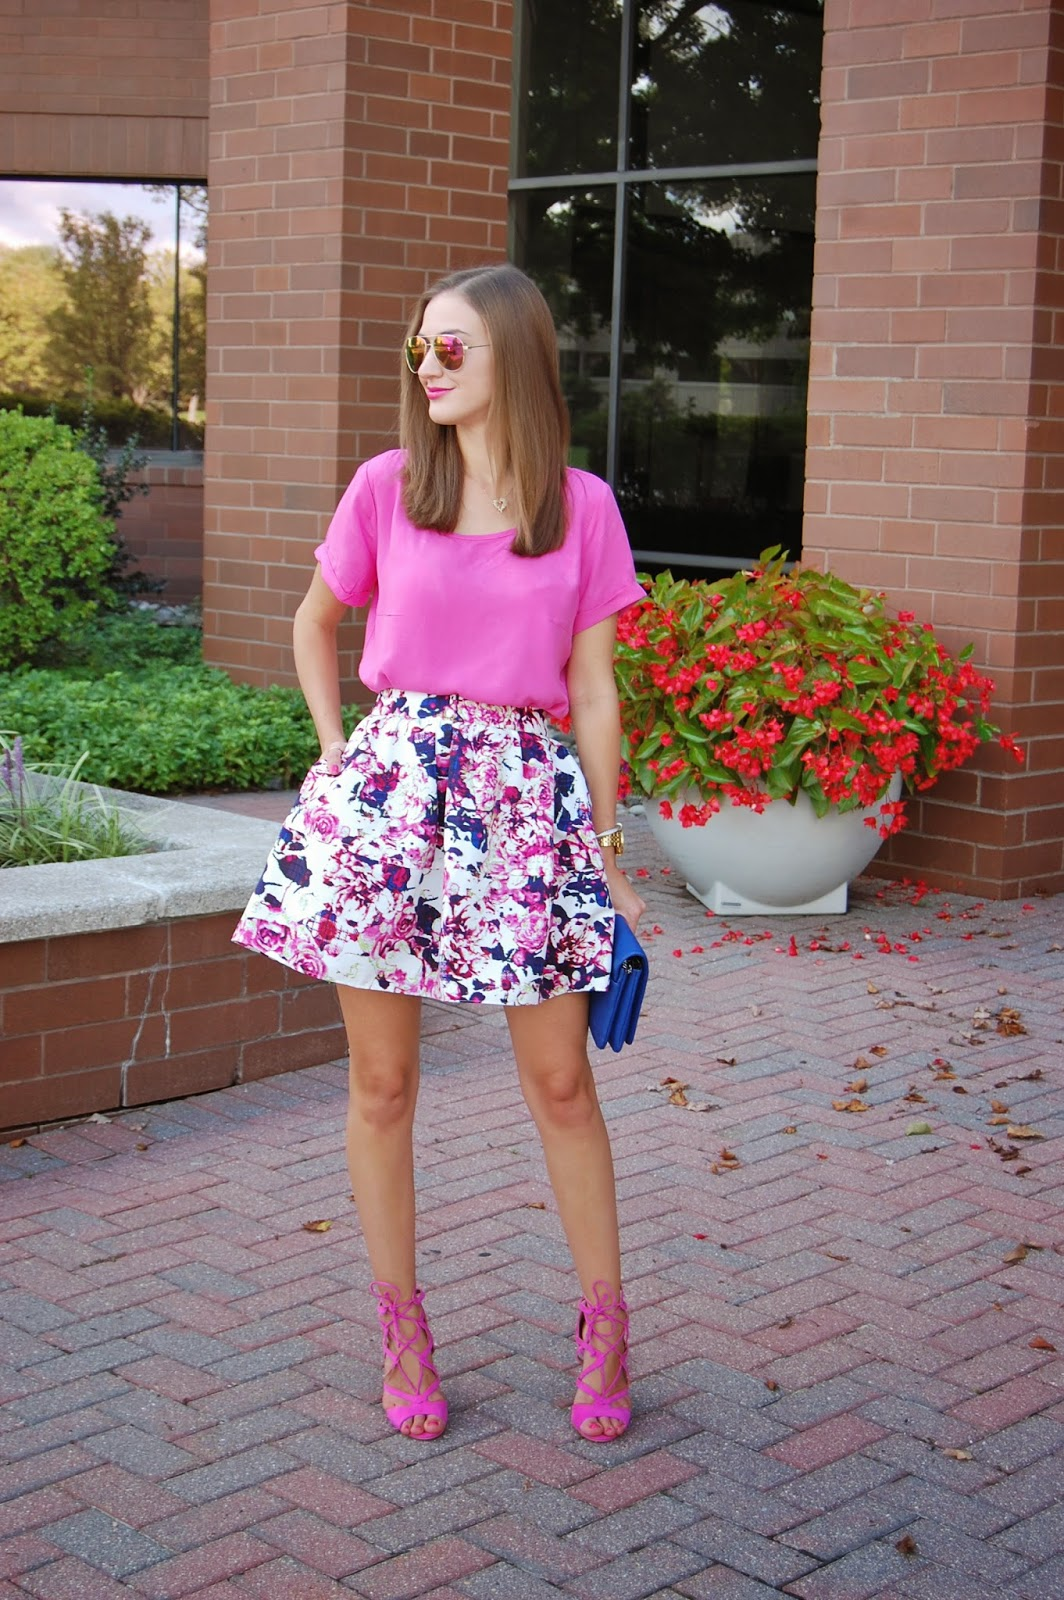 Wearing Trixxi Girl for Copper Key Dillard Exclusive, Express Floral Plaid High Waisted Full Skirt